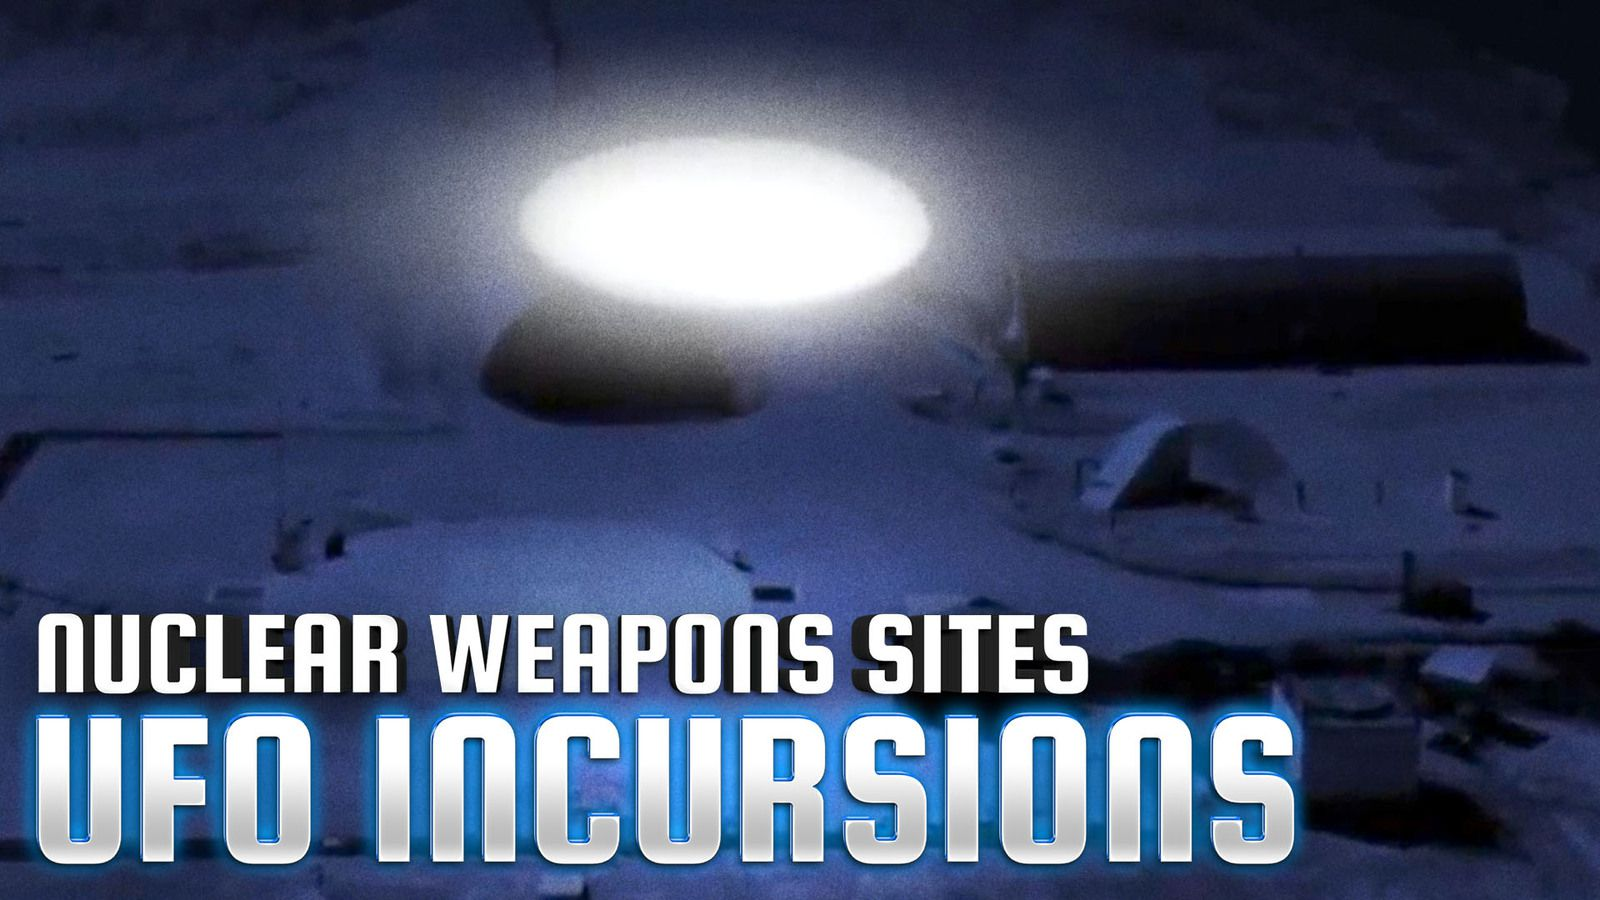 Nuclear Weapons Site UFO / UAP Incursions Witnessed by 150+ Military Personnel ! UFO Sightings 👽